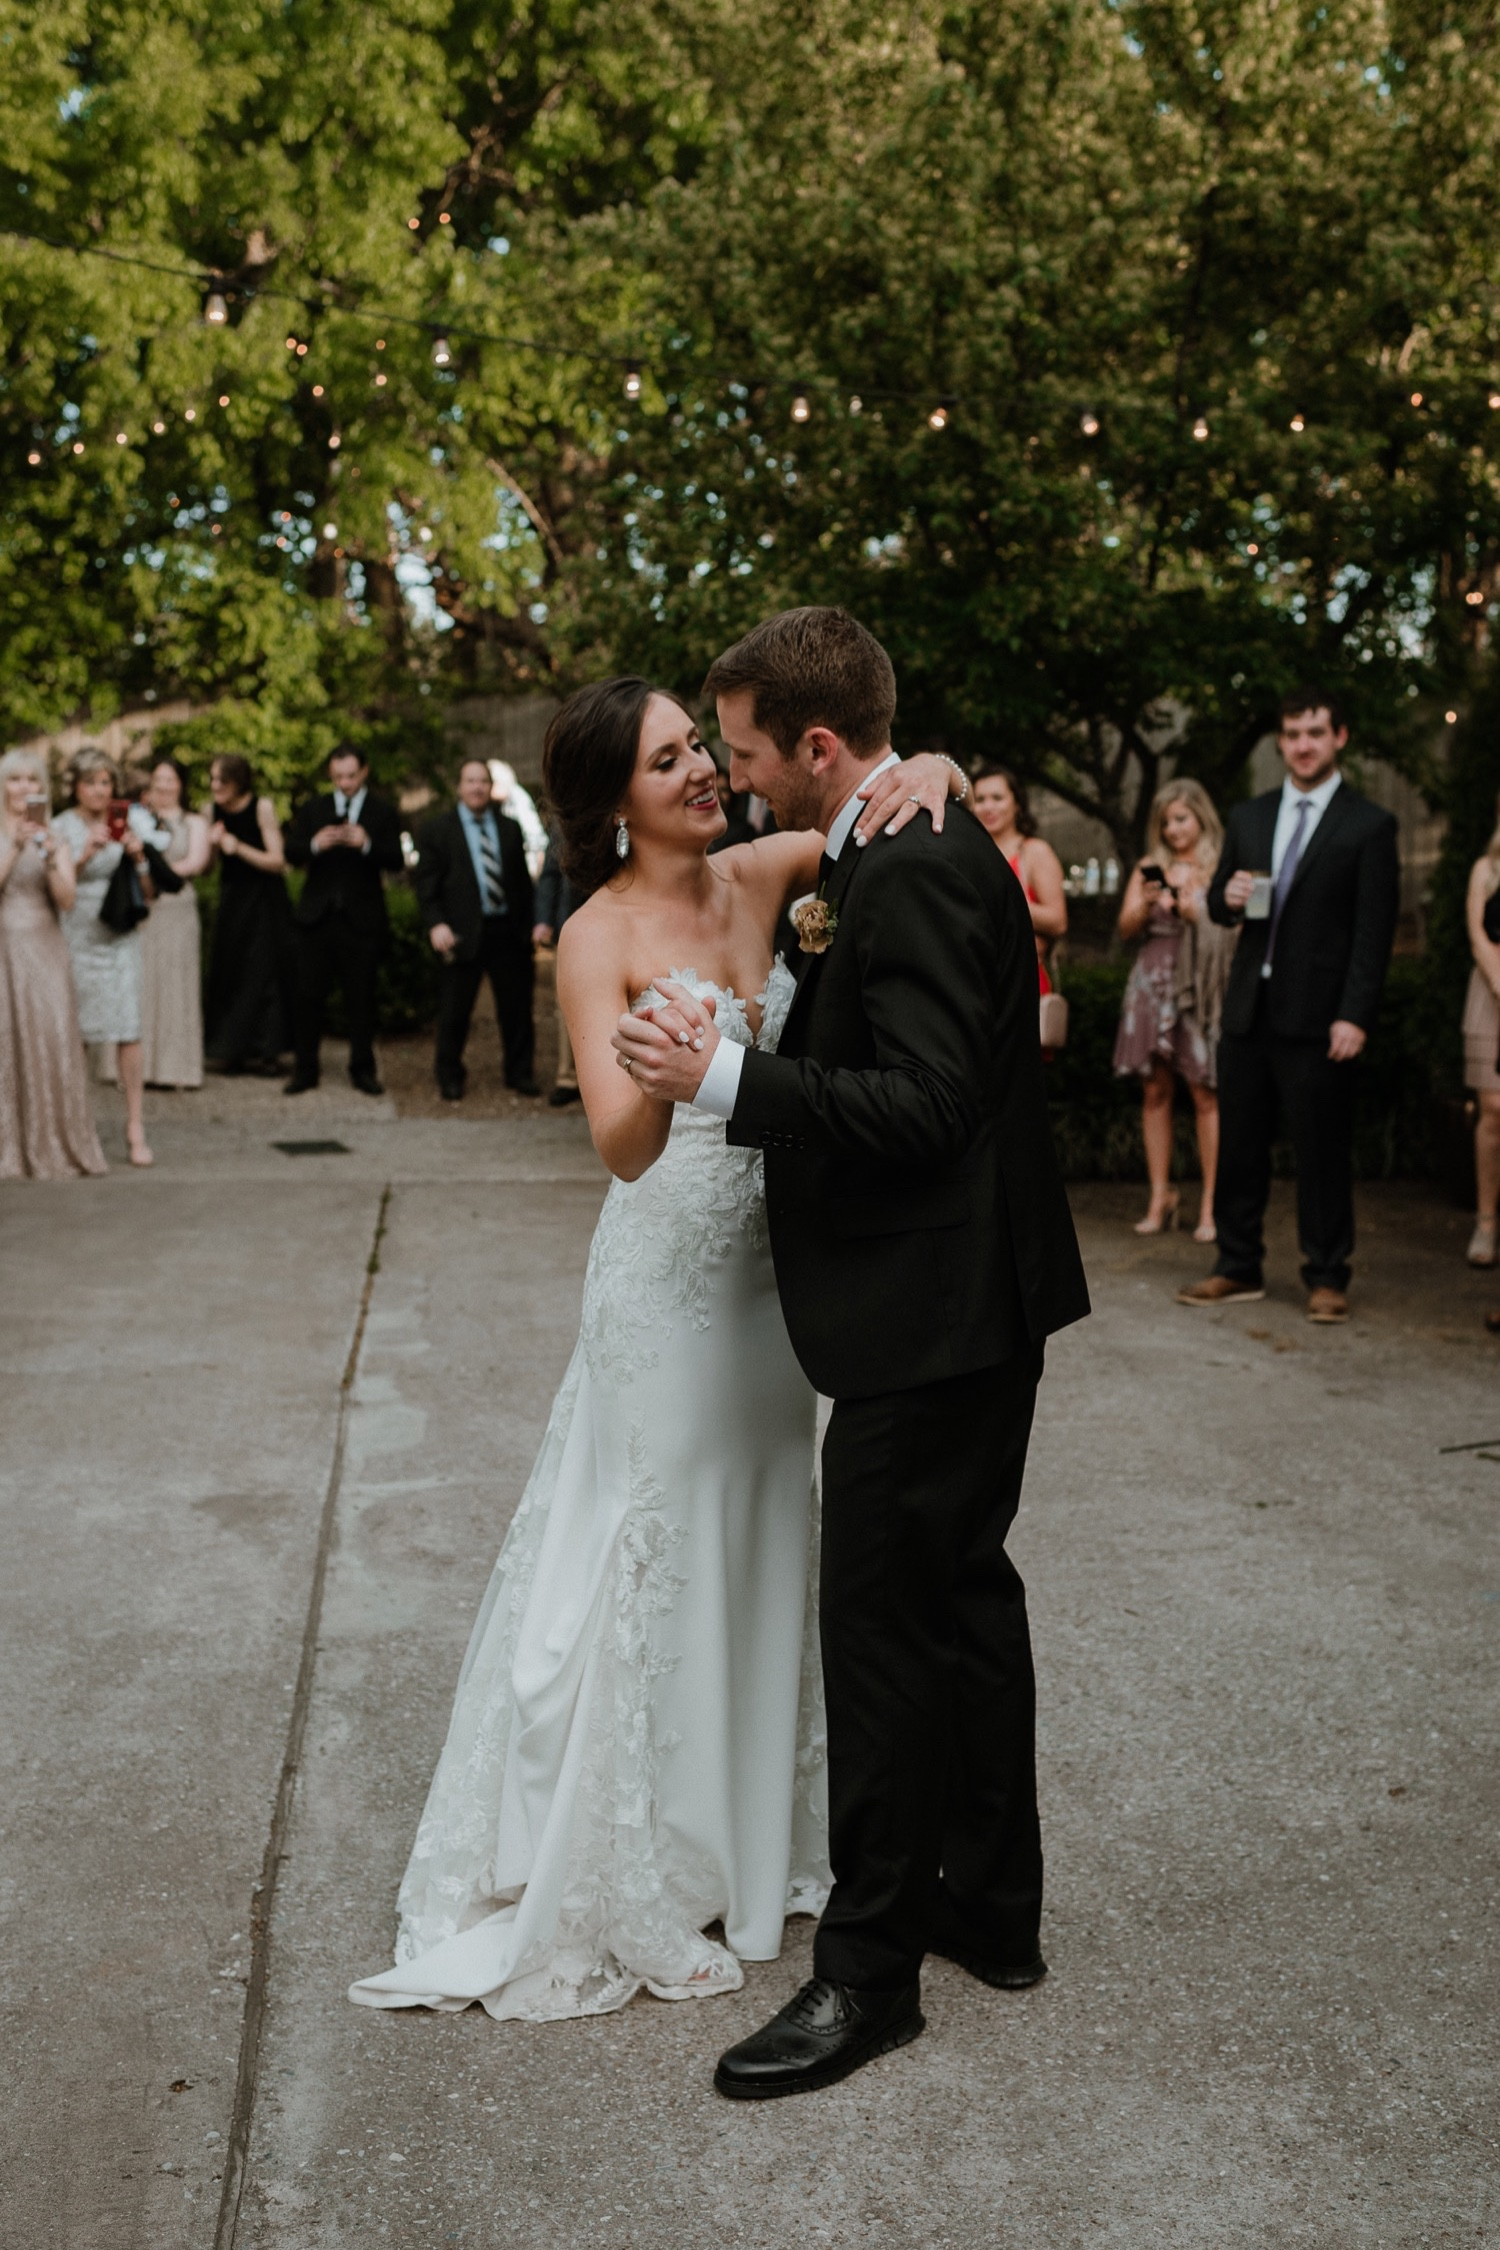 58_JacobandAliWeddingMattLaneFarmFreckledFoxPhotography-822.jpg